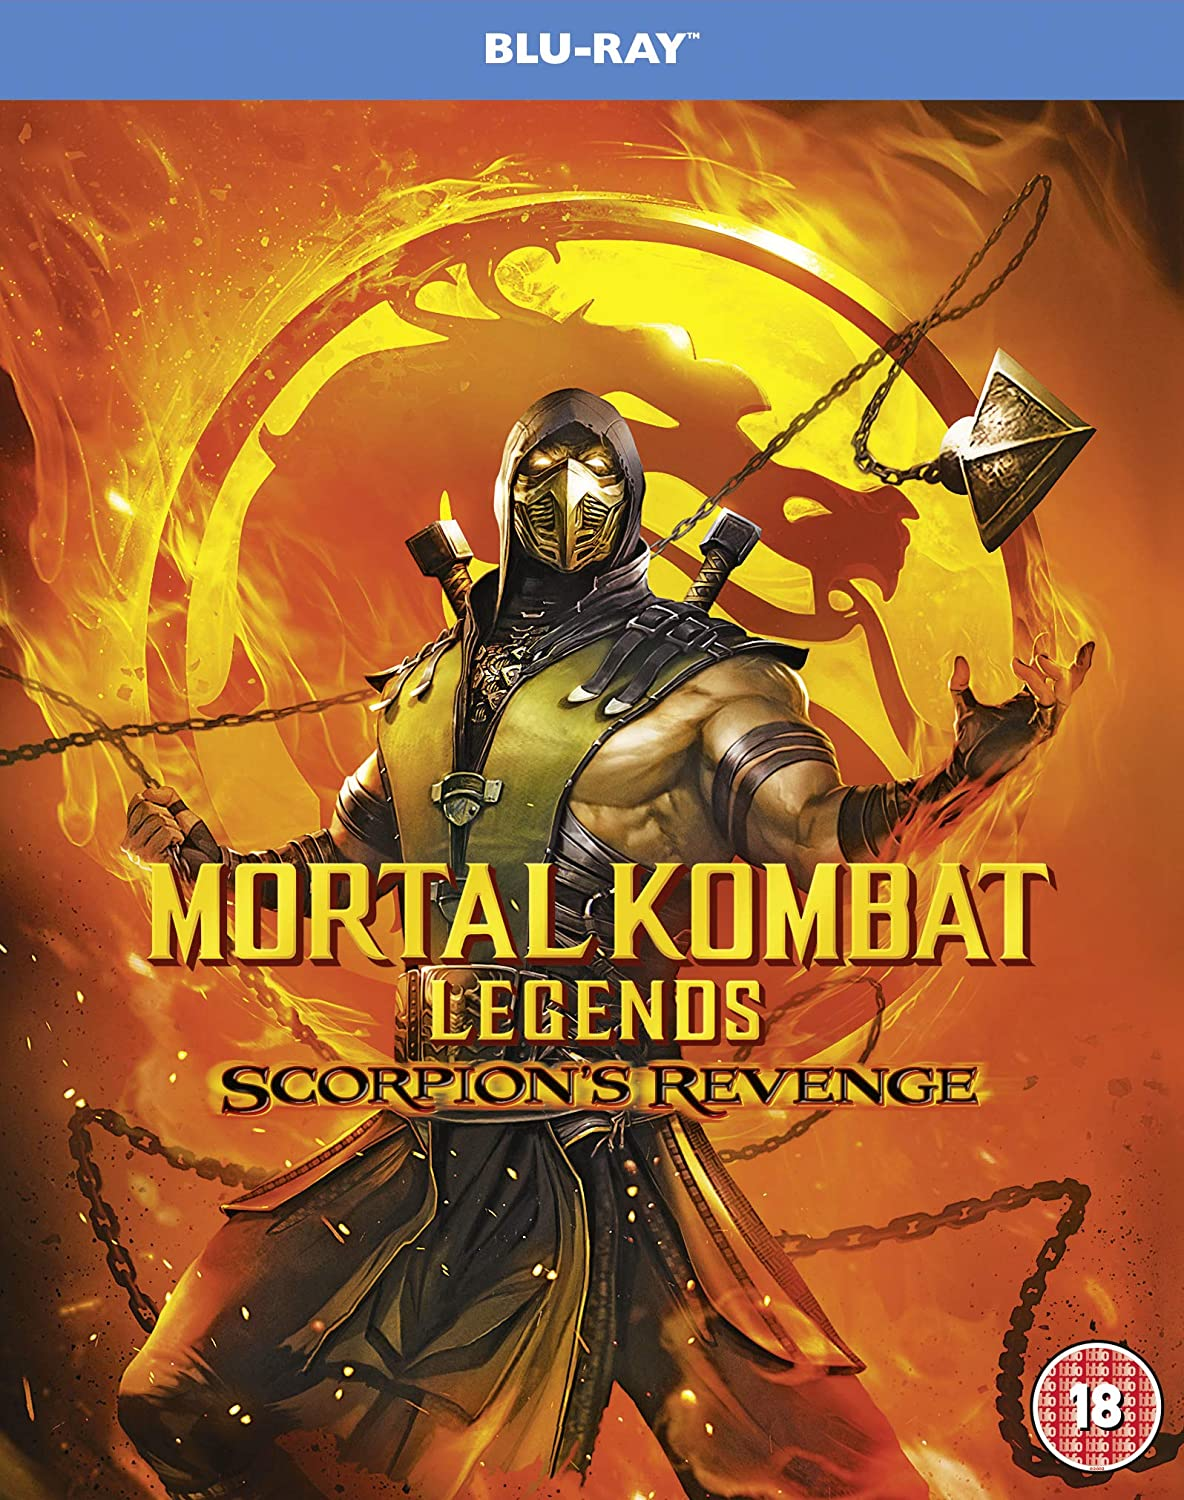 Mortal Kombat Legends: Scorpion's Revenge - Ethan Spaulding [BLU-RAY]